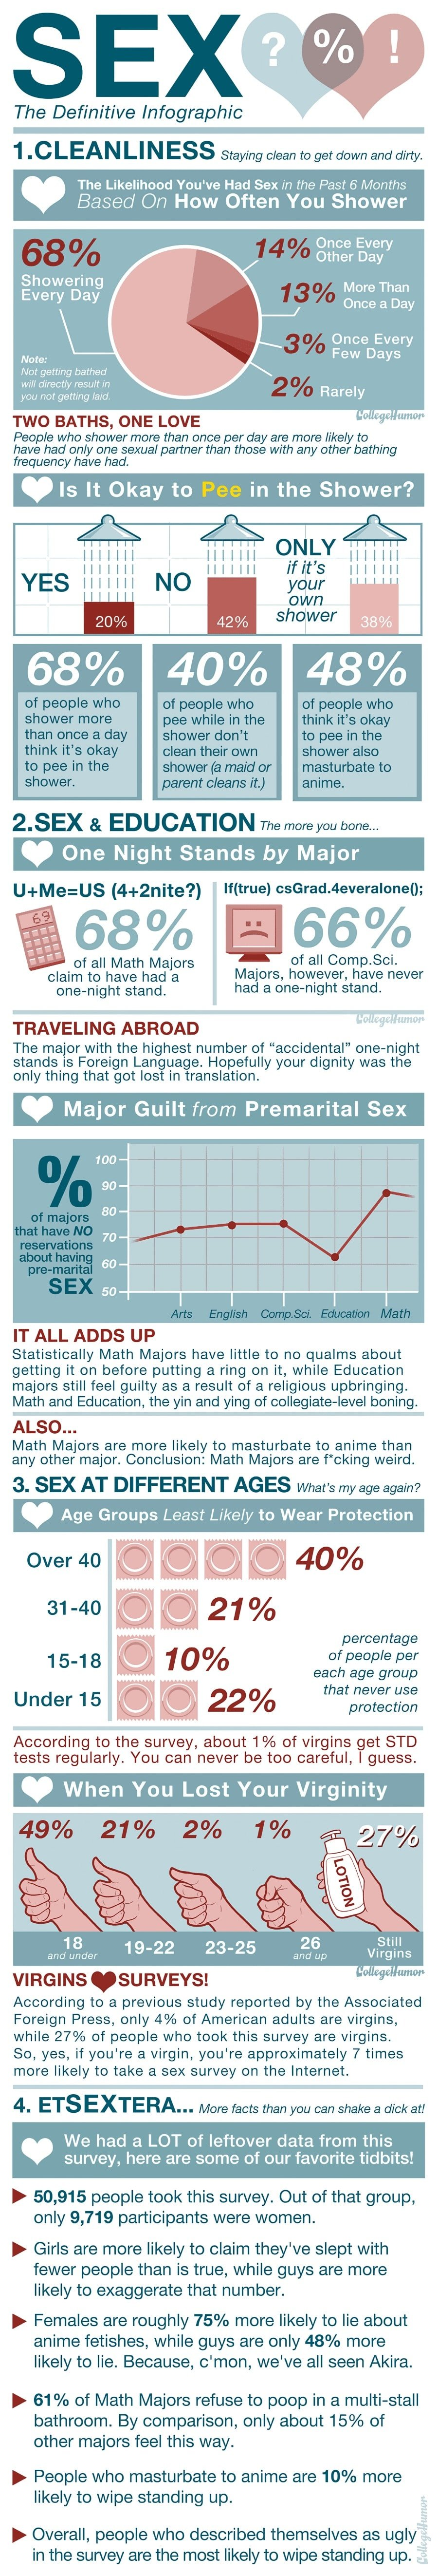 Sex The Definitive Infographic